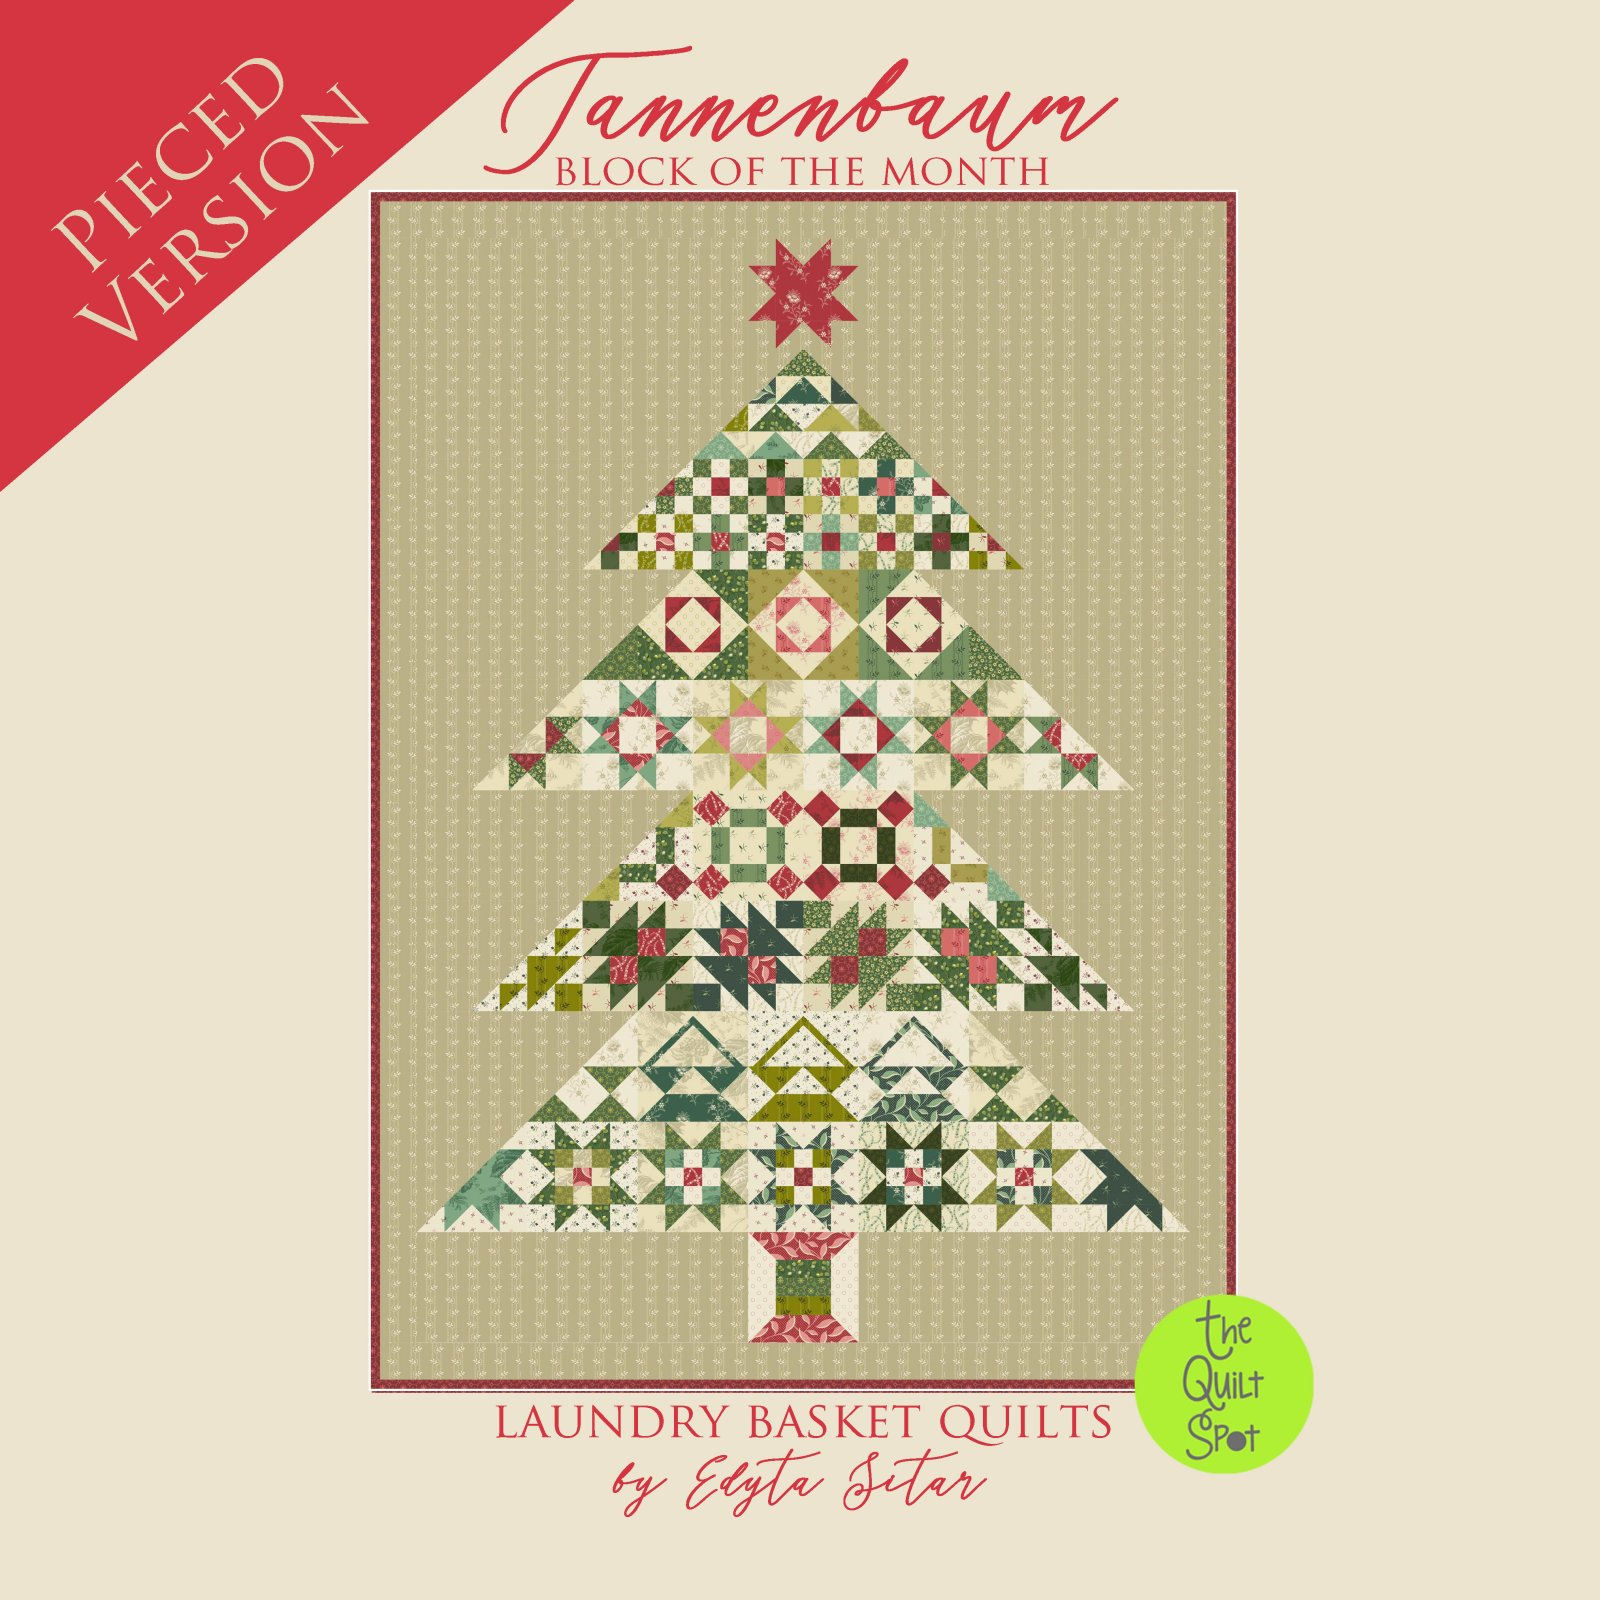 Tannenbaum Block of the Month by Laundry Basket Quilts Pieced